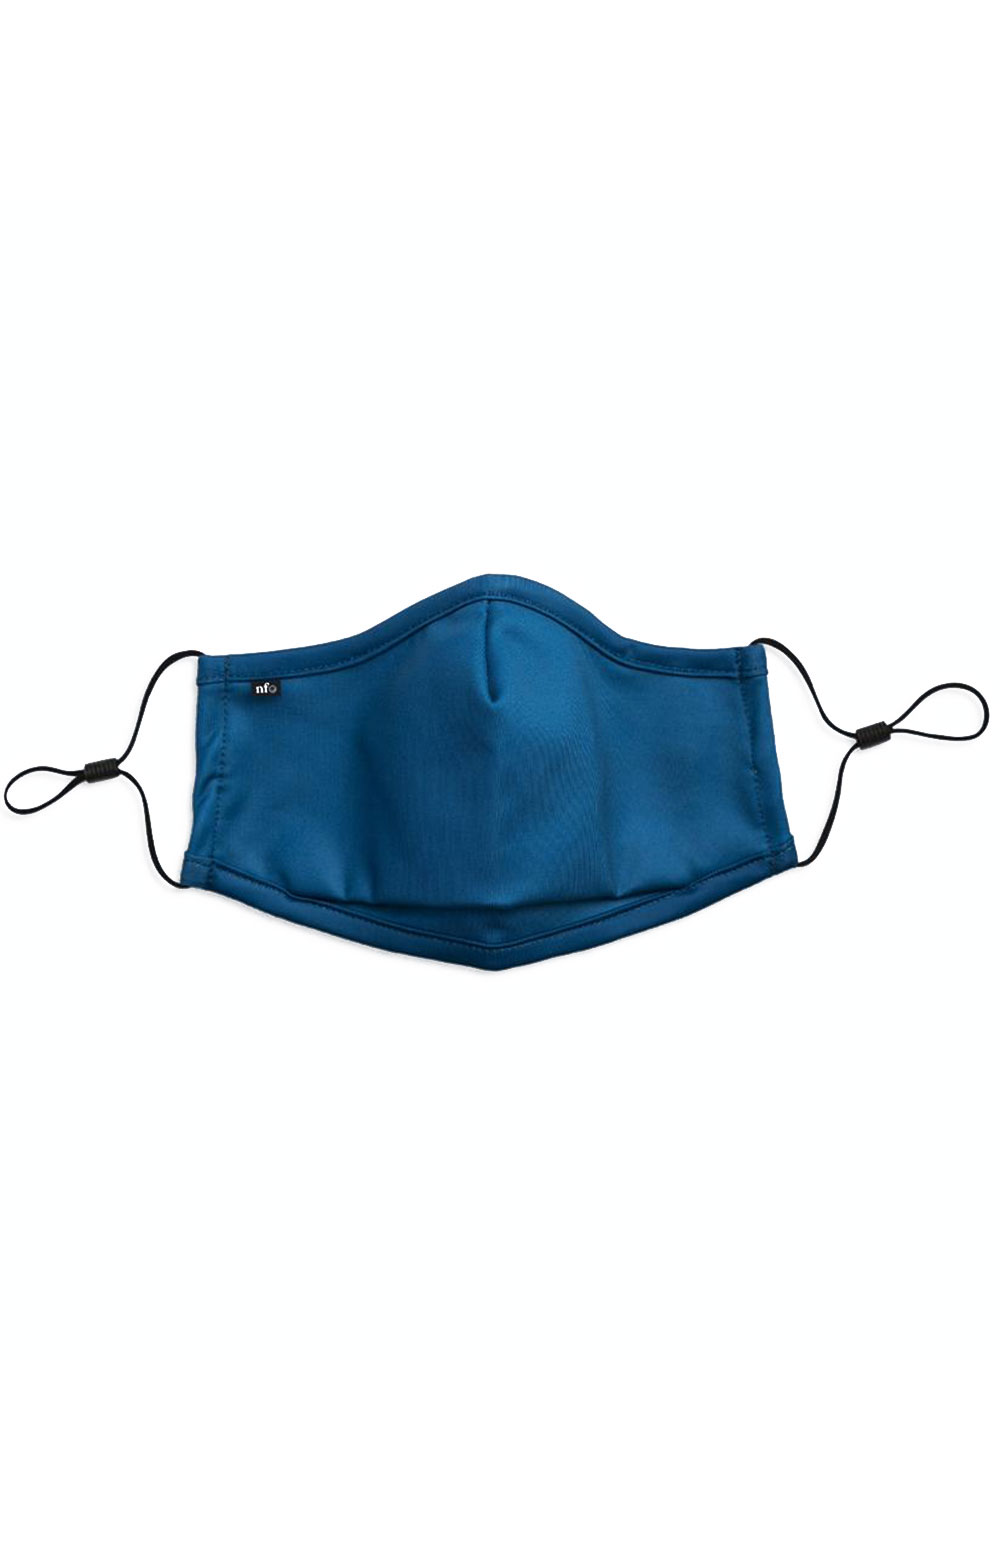 Kids Anti Bacterial Knit Face Mask - Navy